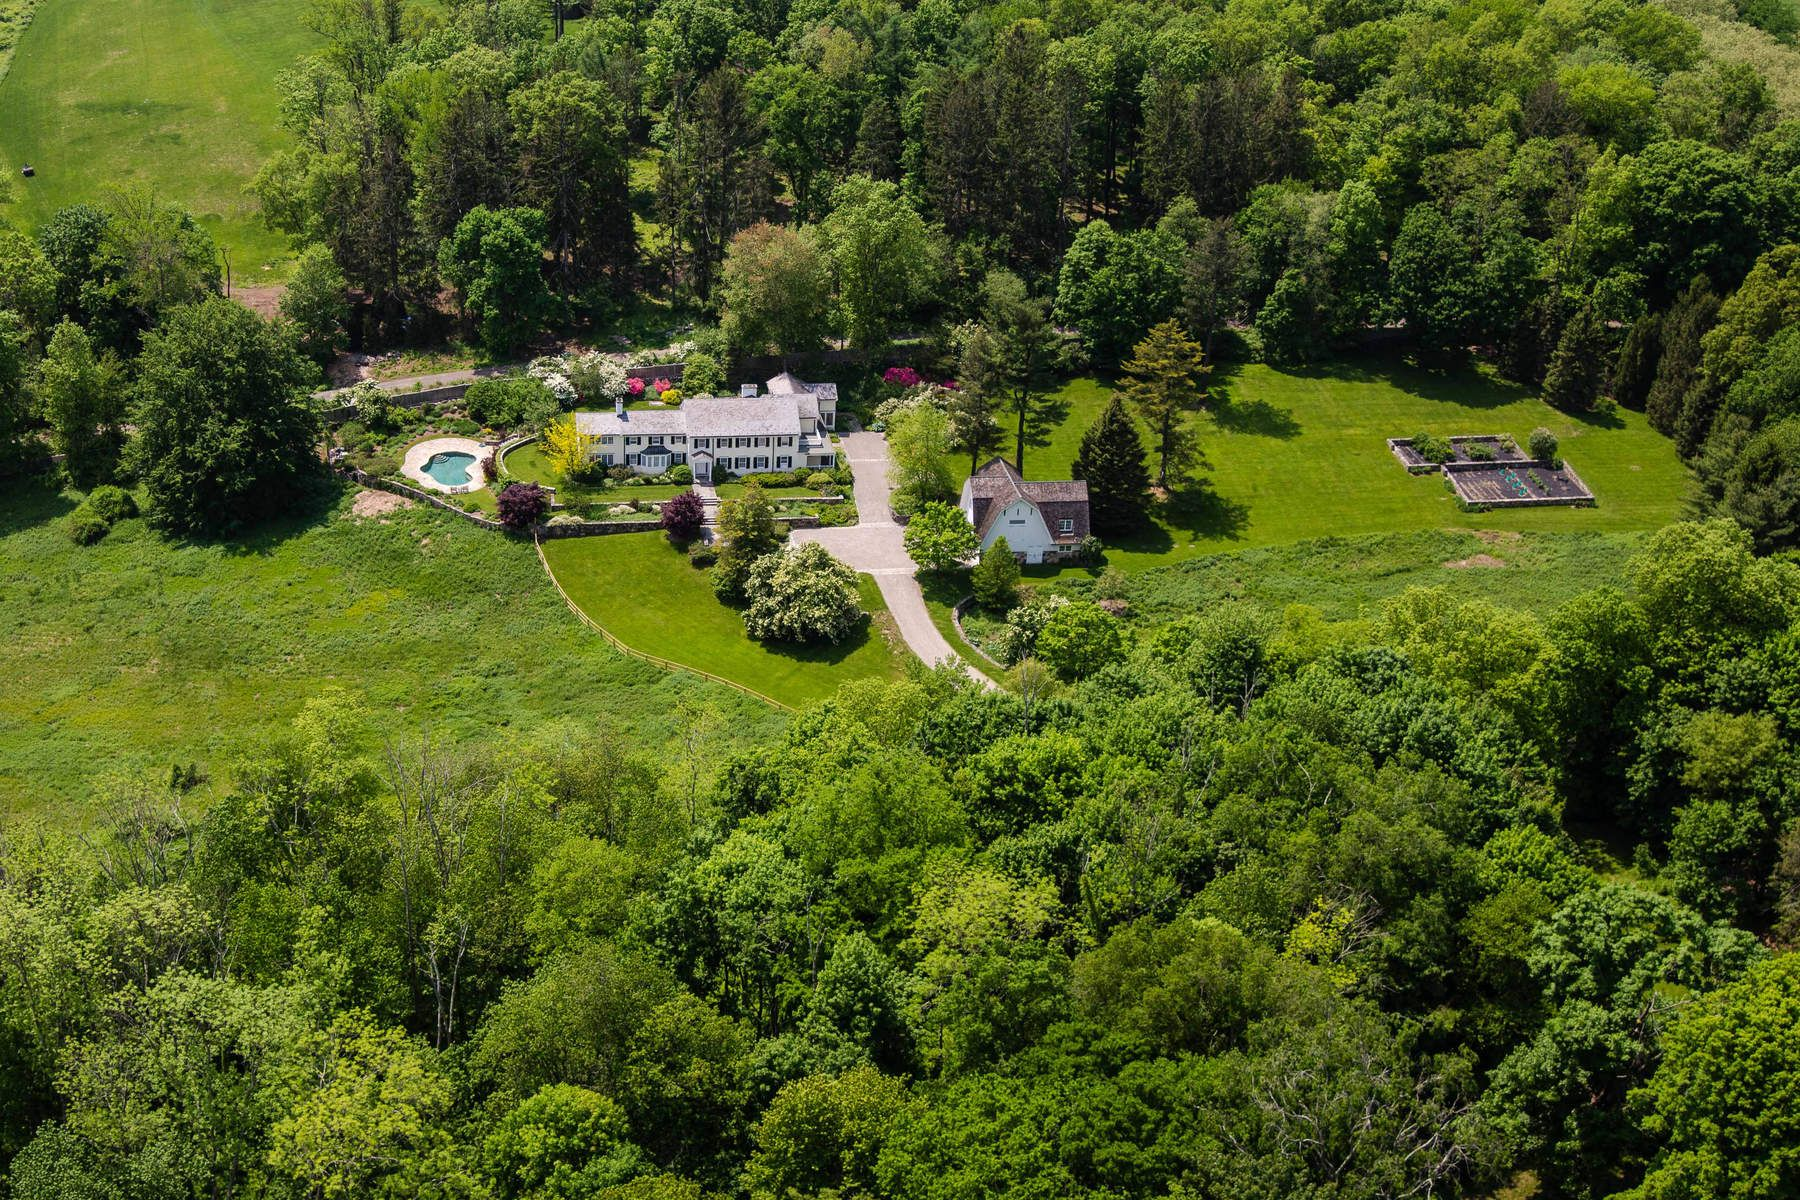 Single Family Home for Sale at Round Hill Farm 16 John Street, Greenwich, Connecticut, 06831 United States